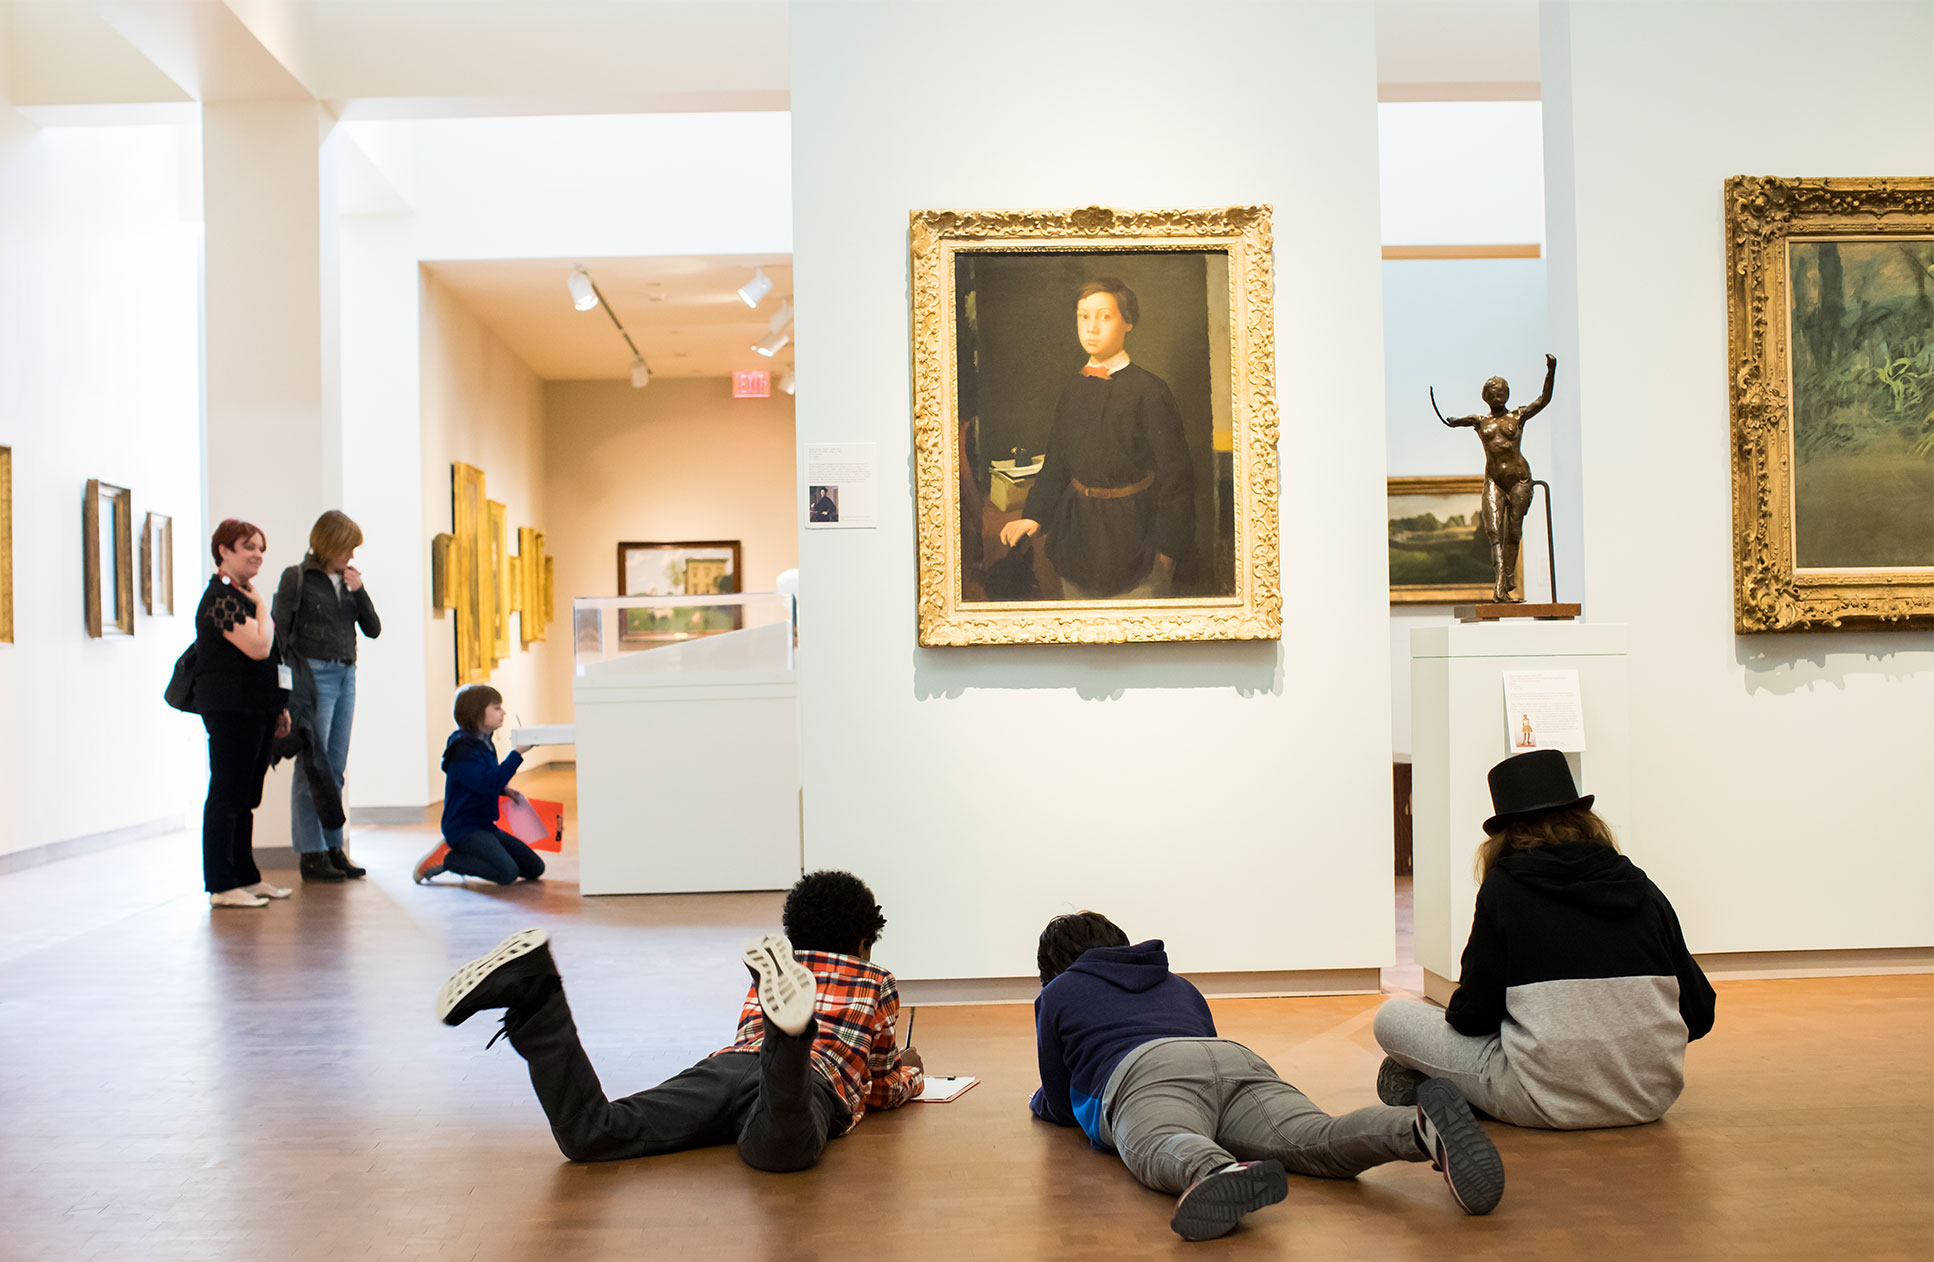 School visitors looking at and drawing art in the galleries